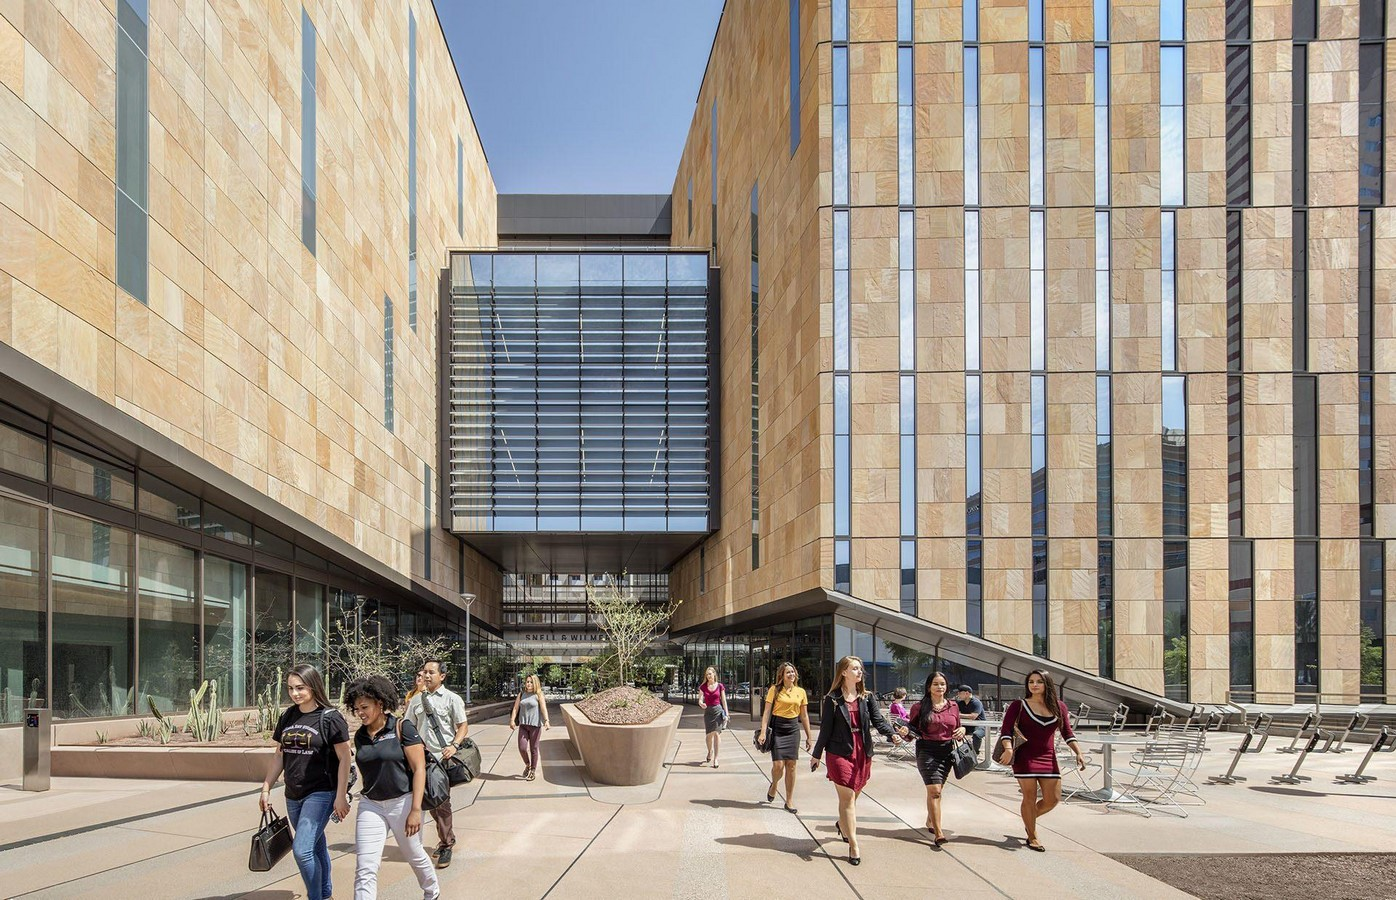 Arizona State University, Beus Center for Law and Society - Sheet3